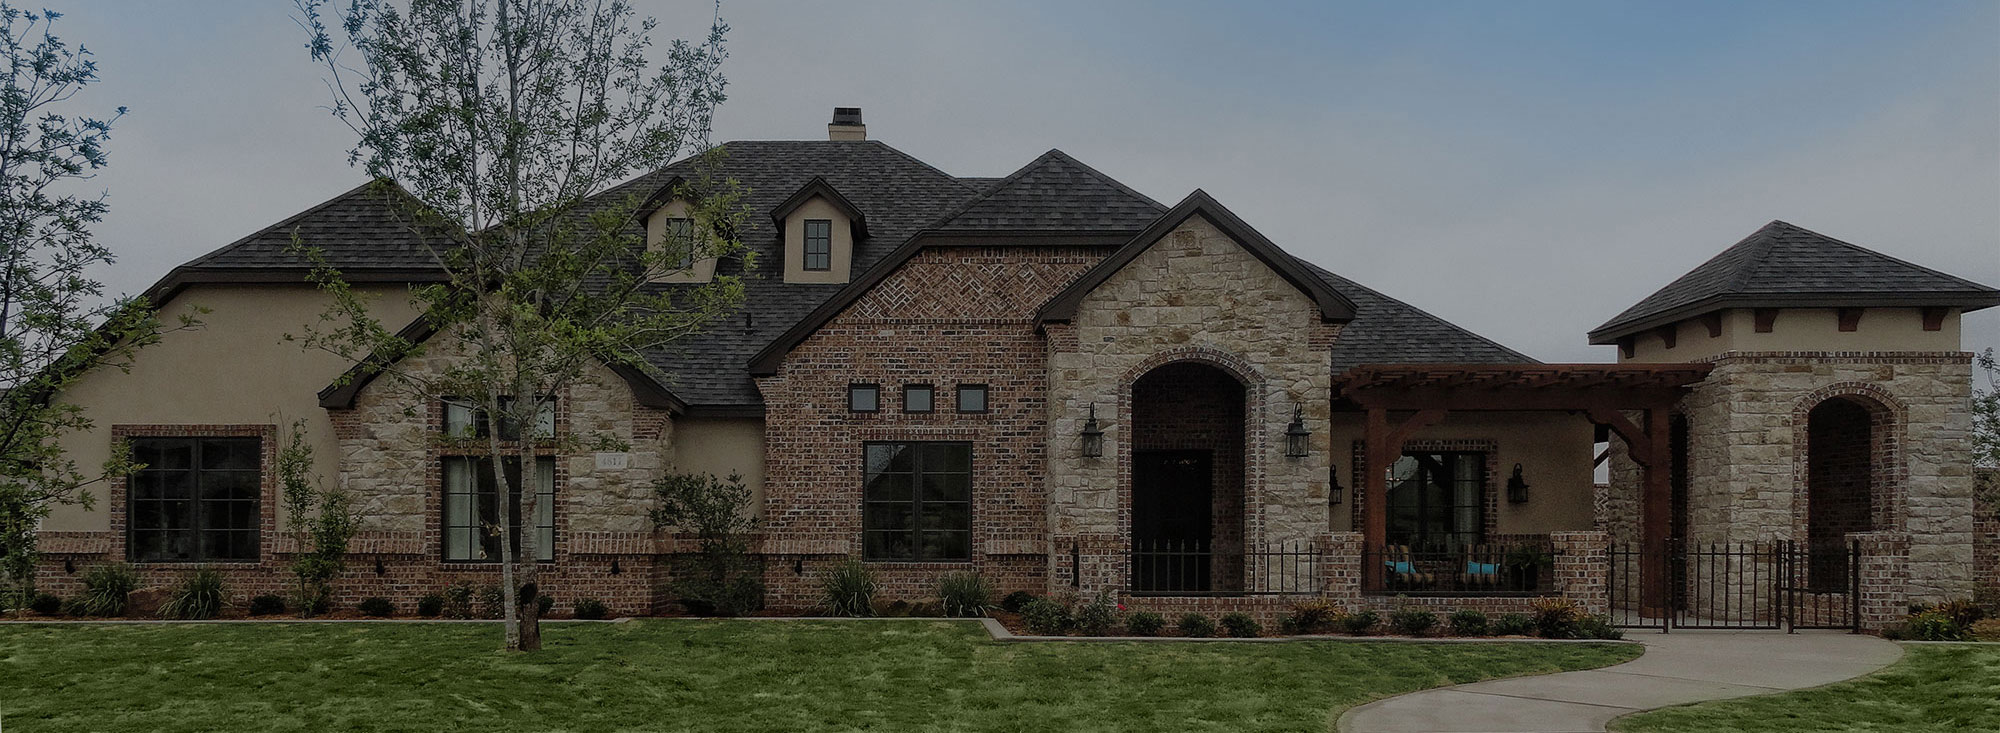 We build impeccable custom homes in Lubbock, Texas.